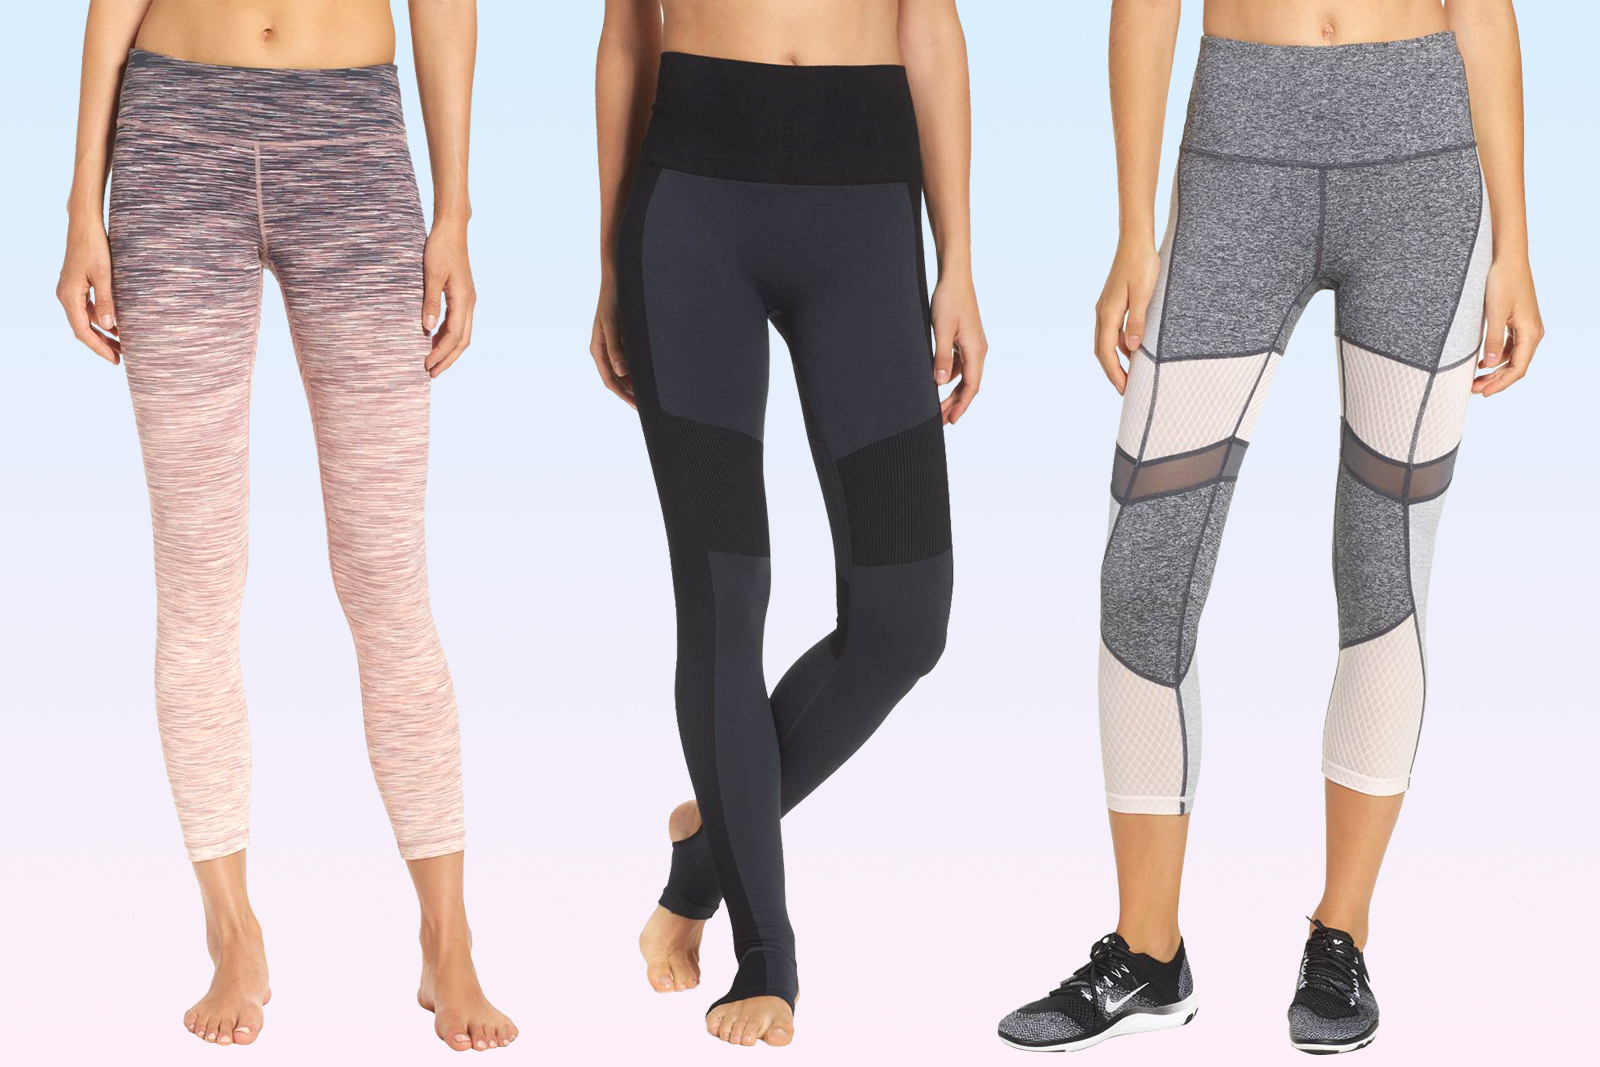 The Best Celebrity-Inspired Leggings to Buy During Labor Day